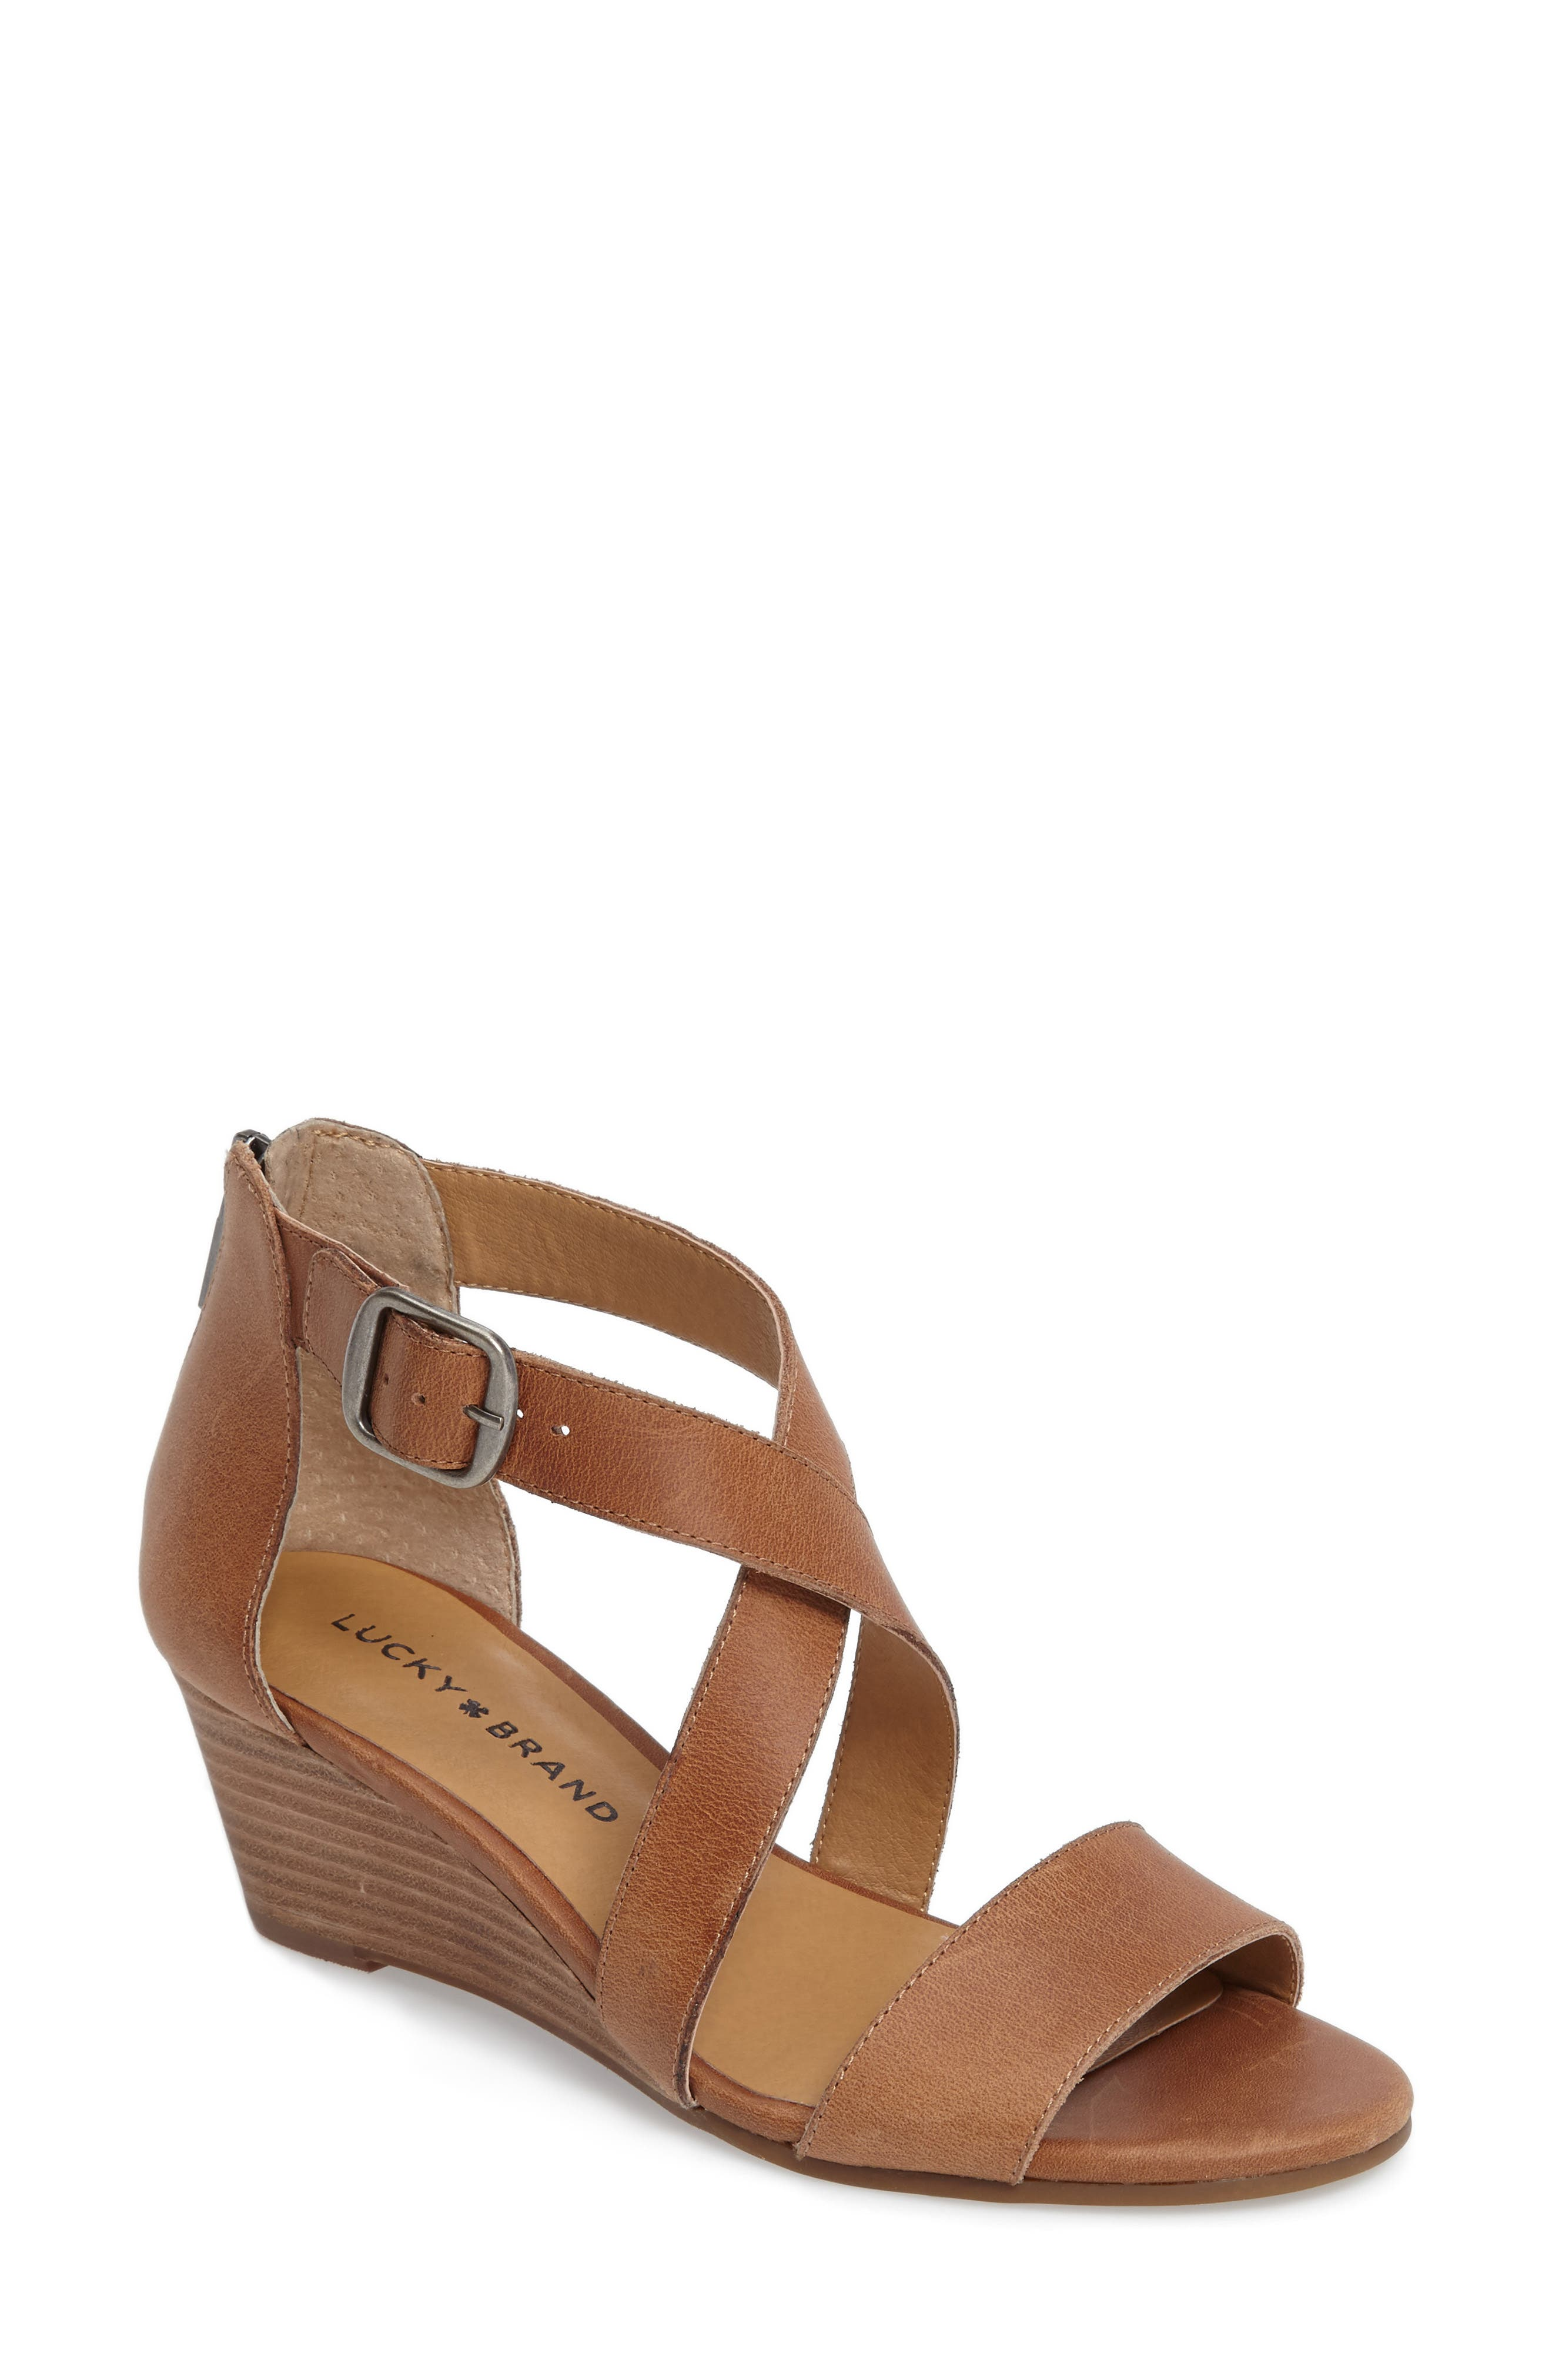 Jenley Wedge Sandals 8OUI2fjk